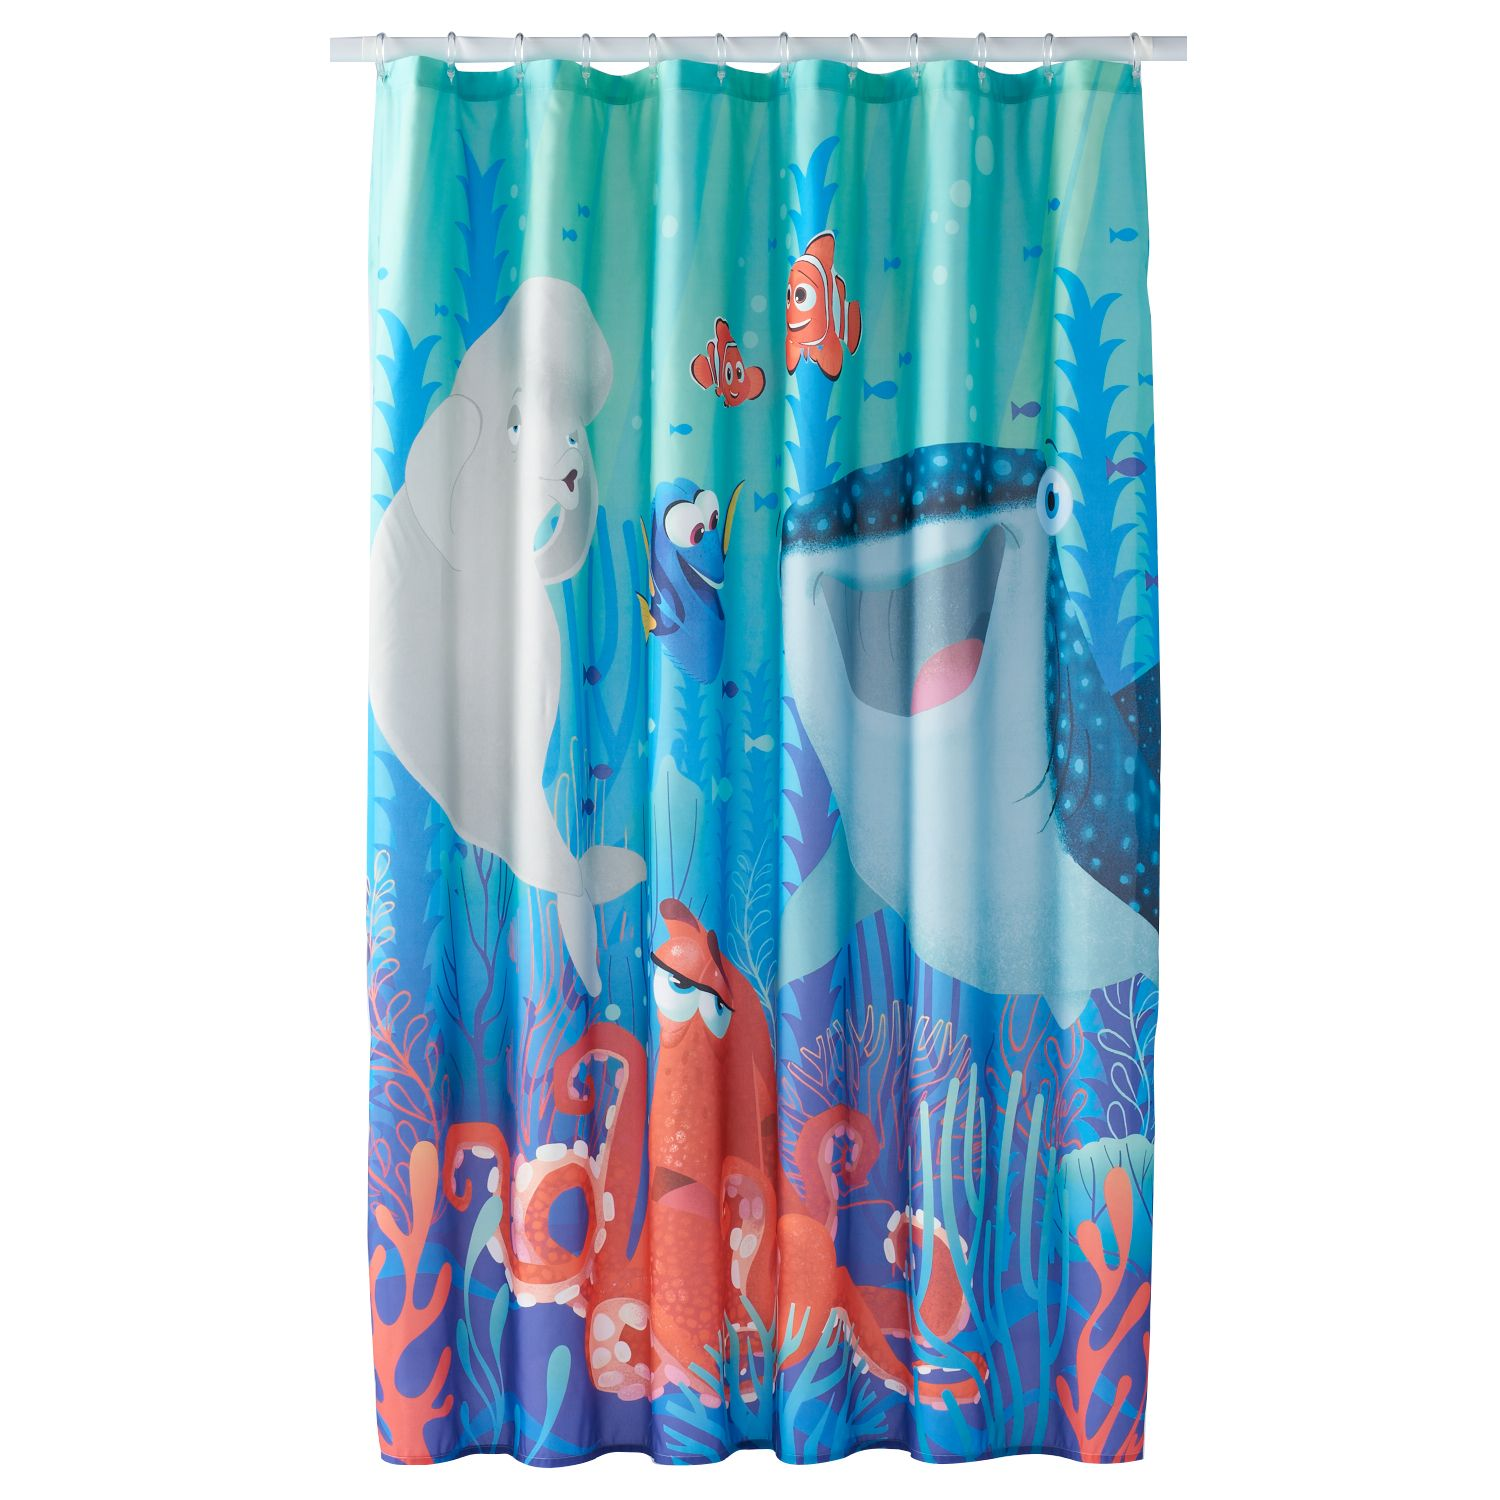 Ordinaire Disney / Pixar Finding Dory Shower Curtain Collection By Jumping Beans®